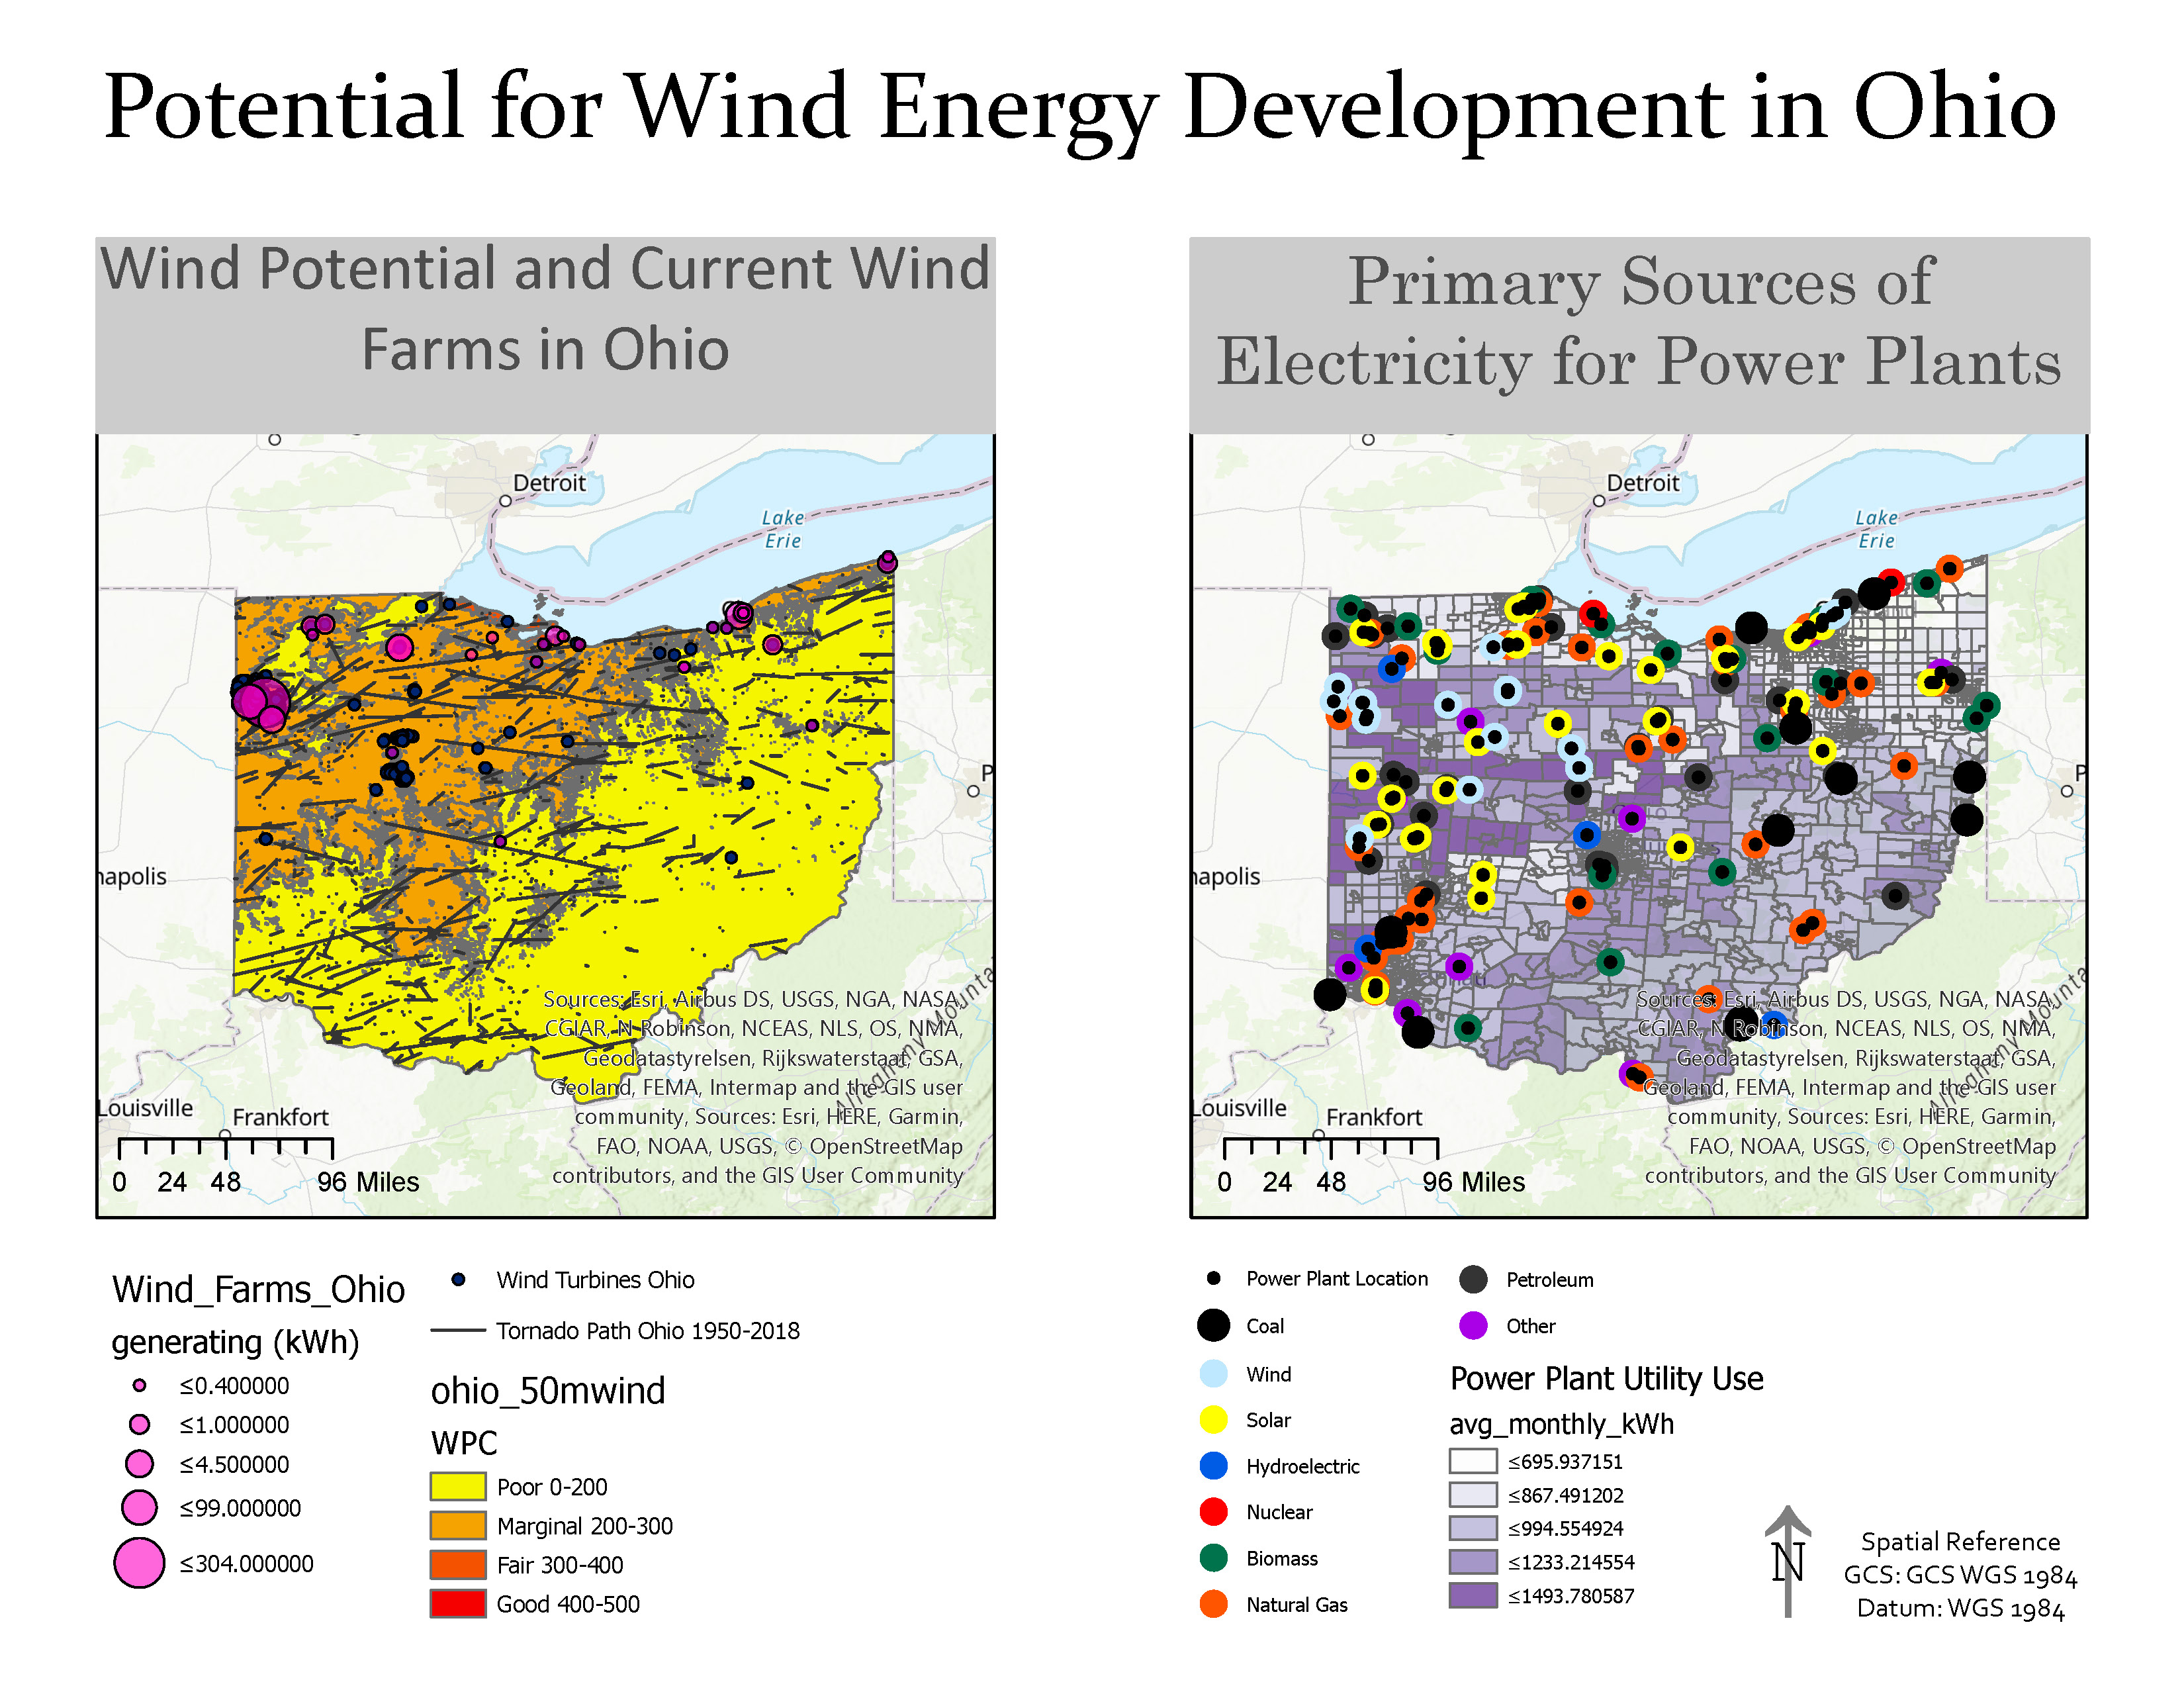 Potential for Wind Energy Development in Ohio map